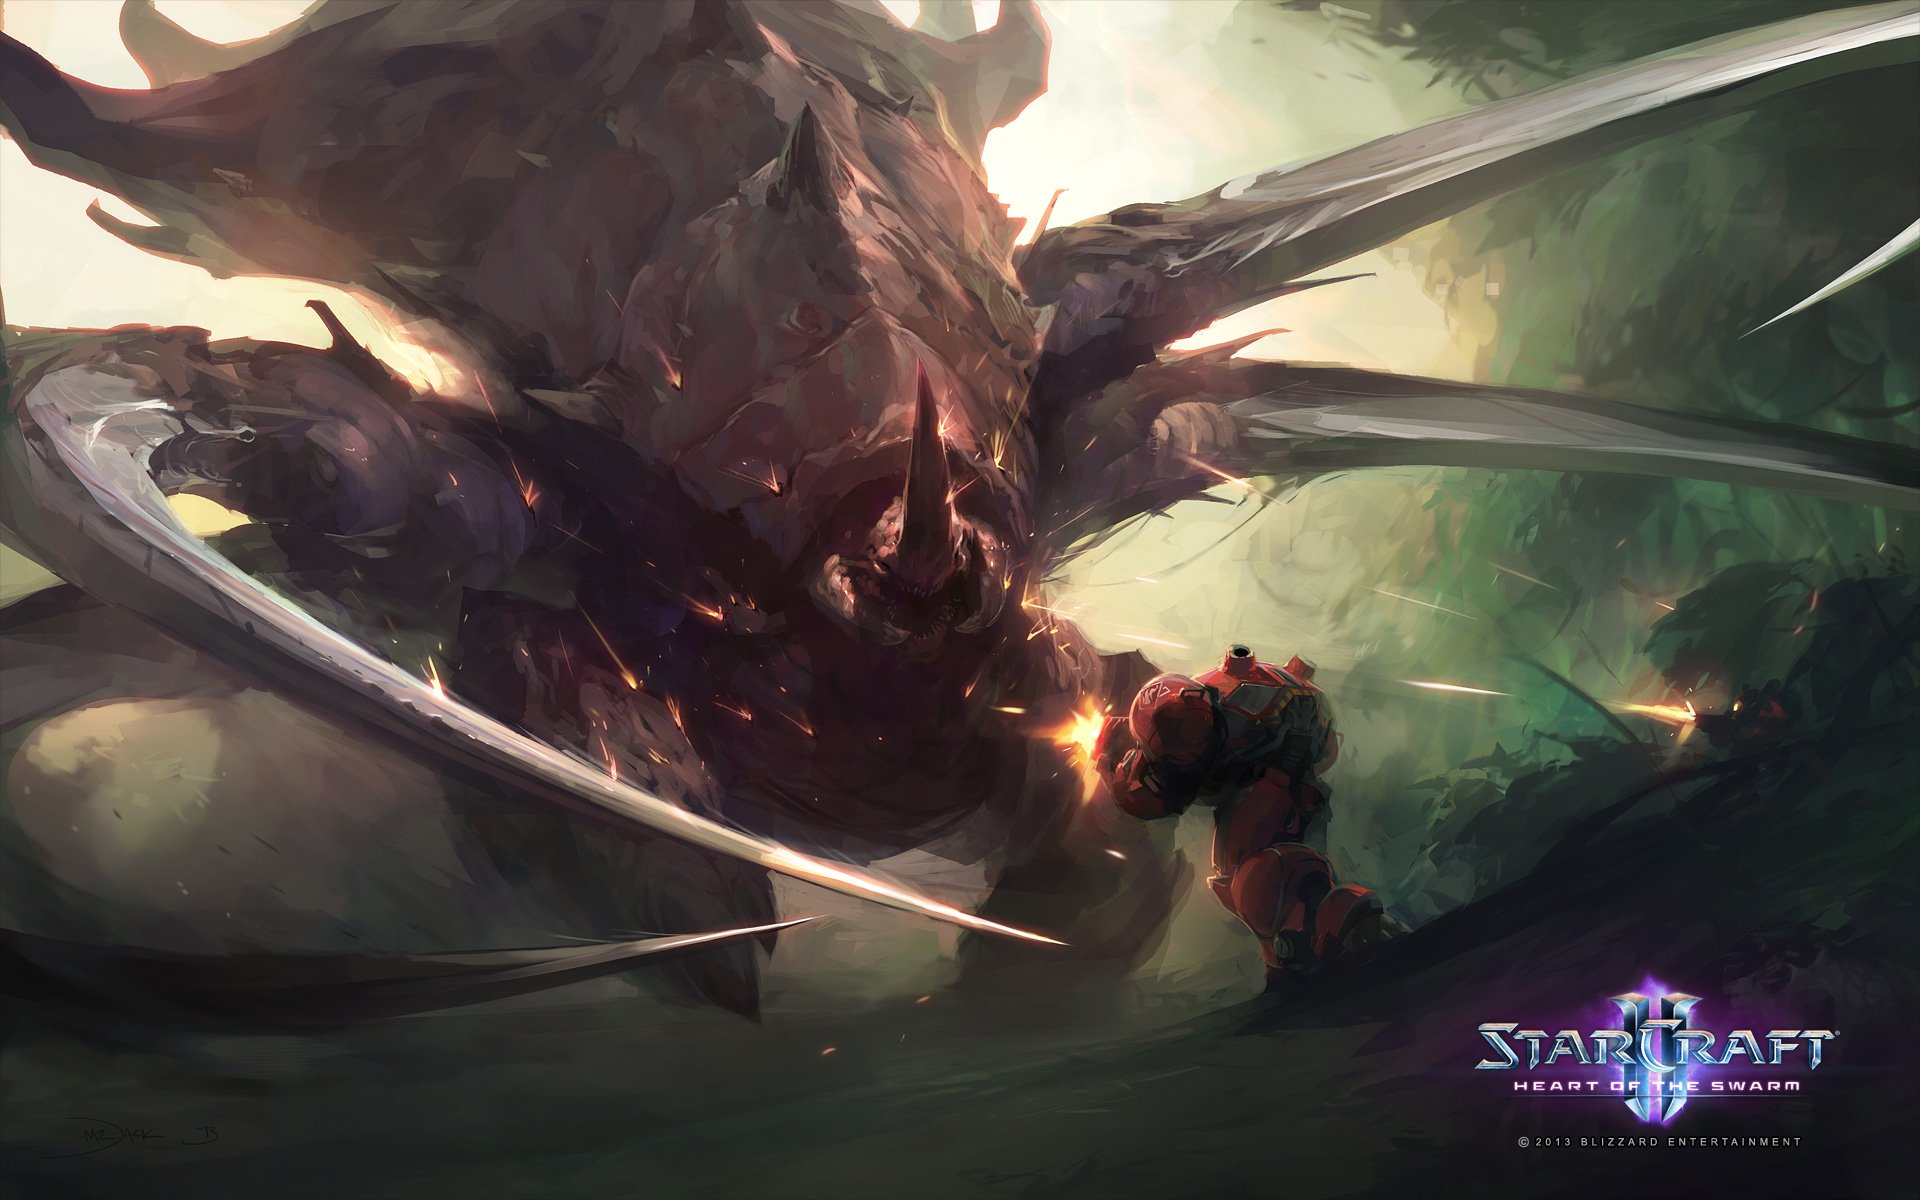 Starcraft 2 Iphone Wallpaper Starcraft Ii Heart Of The Swarm Full Hd Wallpaper And